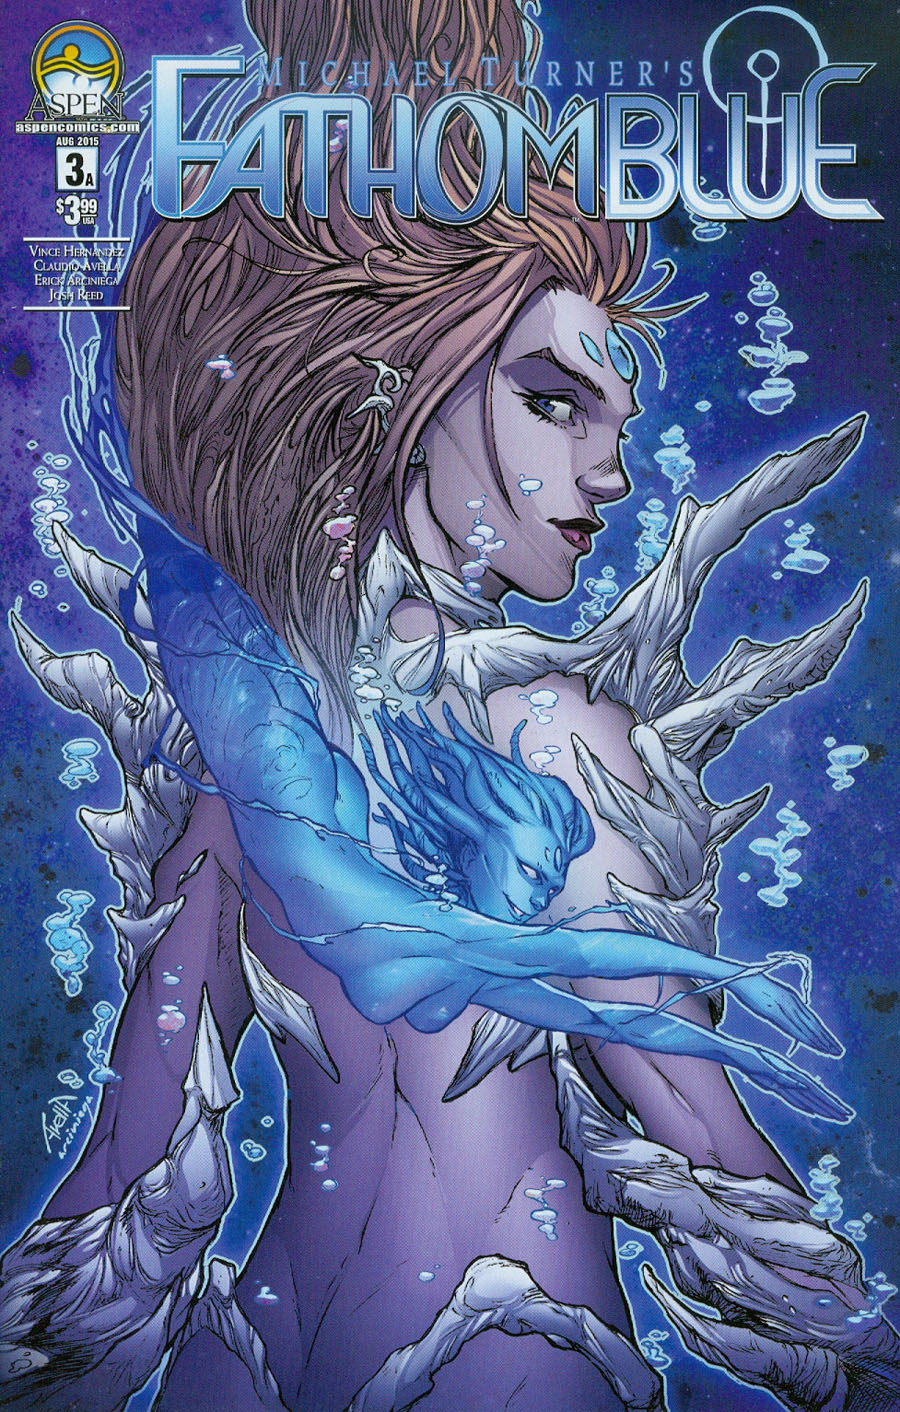 Fathom Blue #3 Cover A Regular Claudio Avella Cover